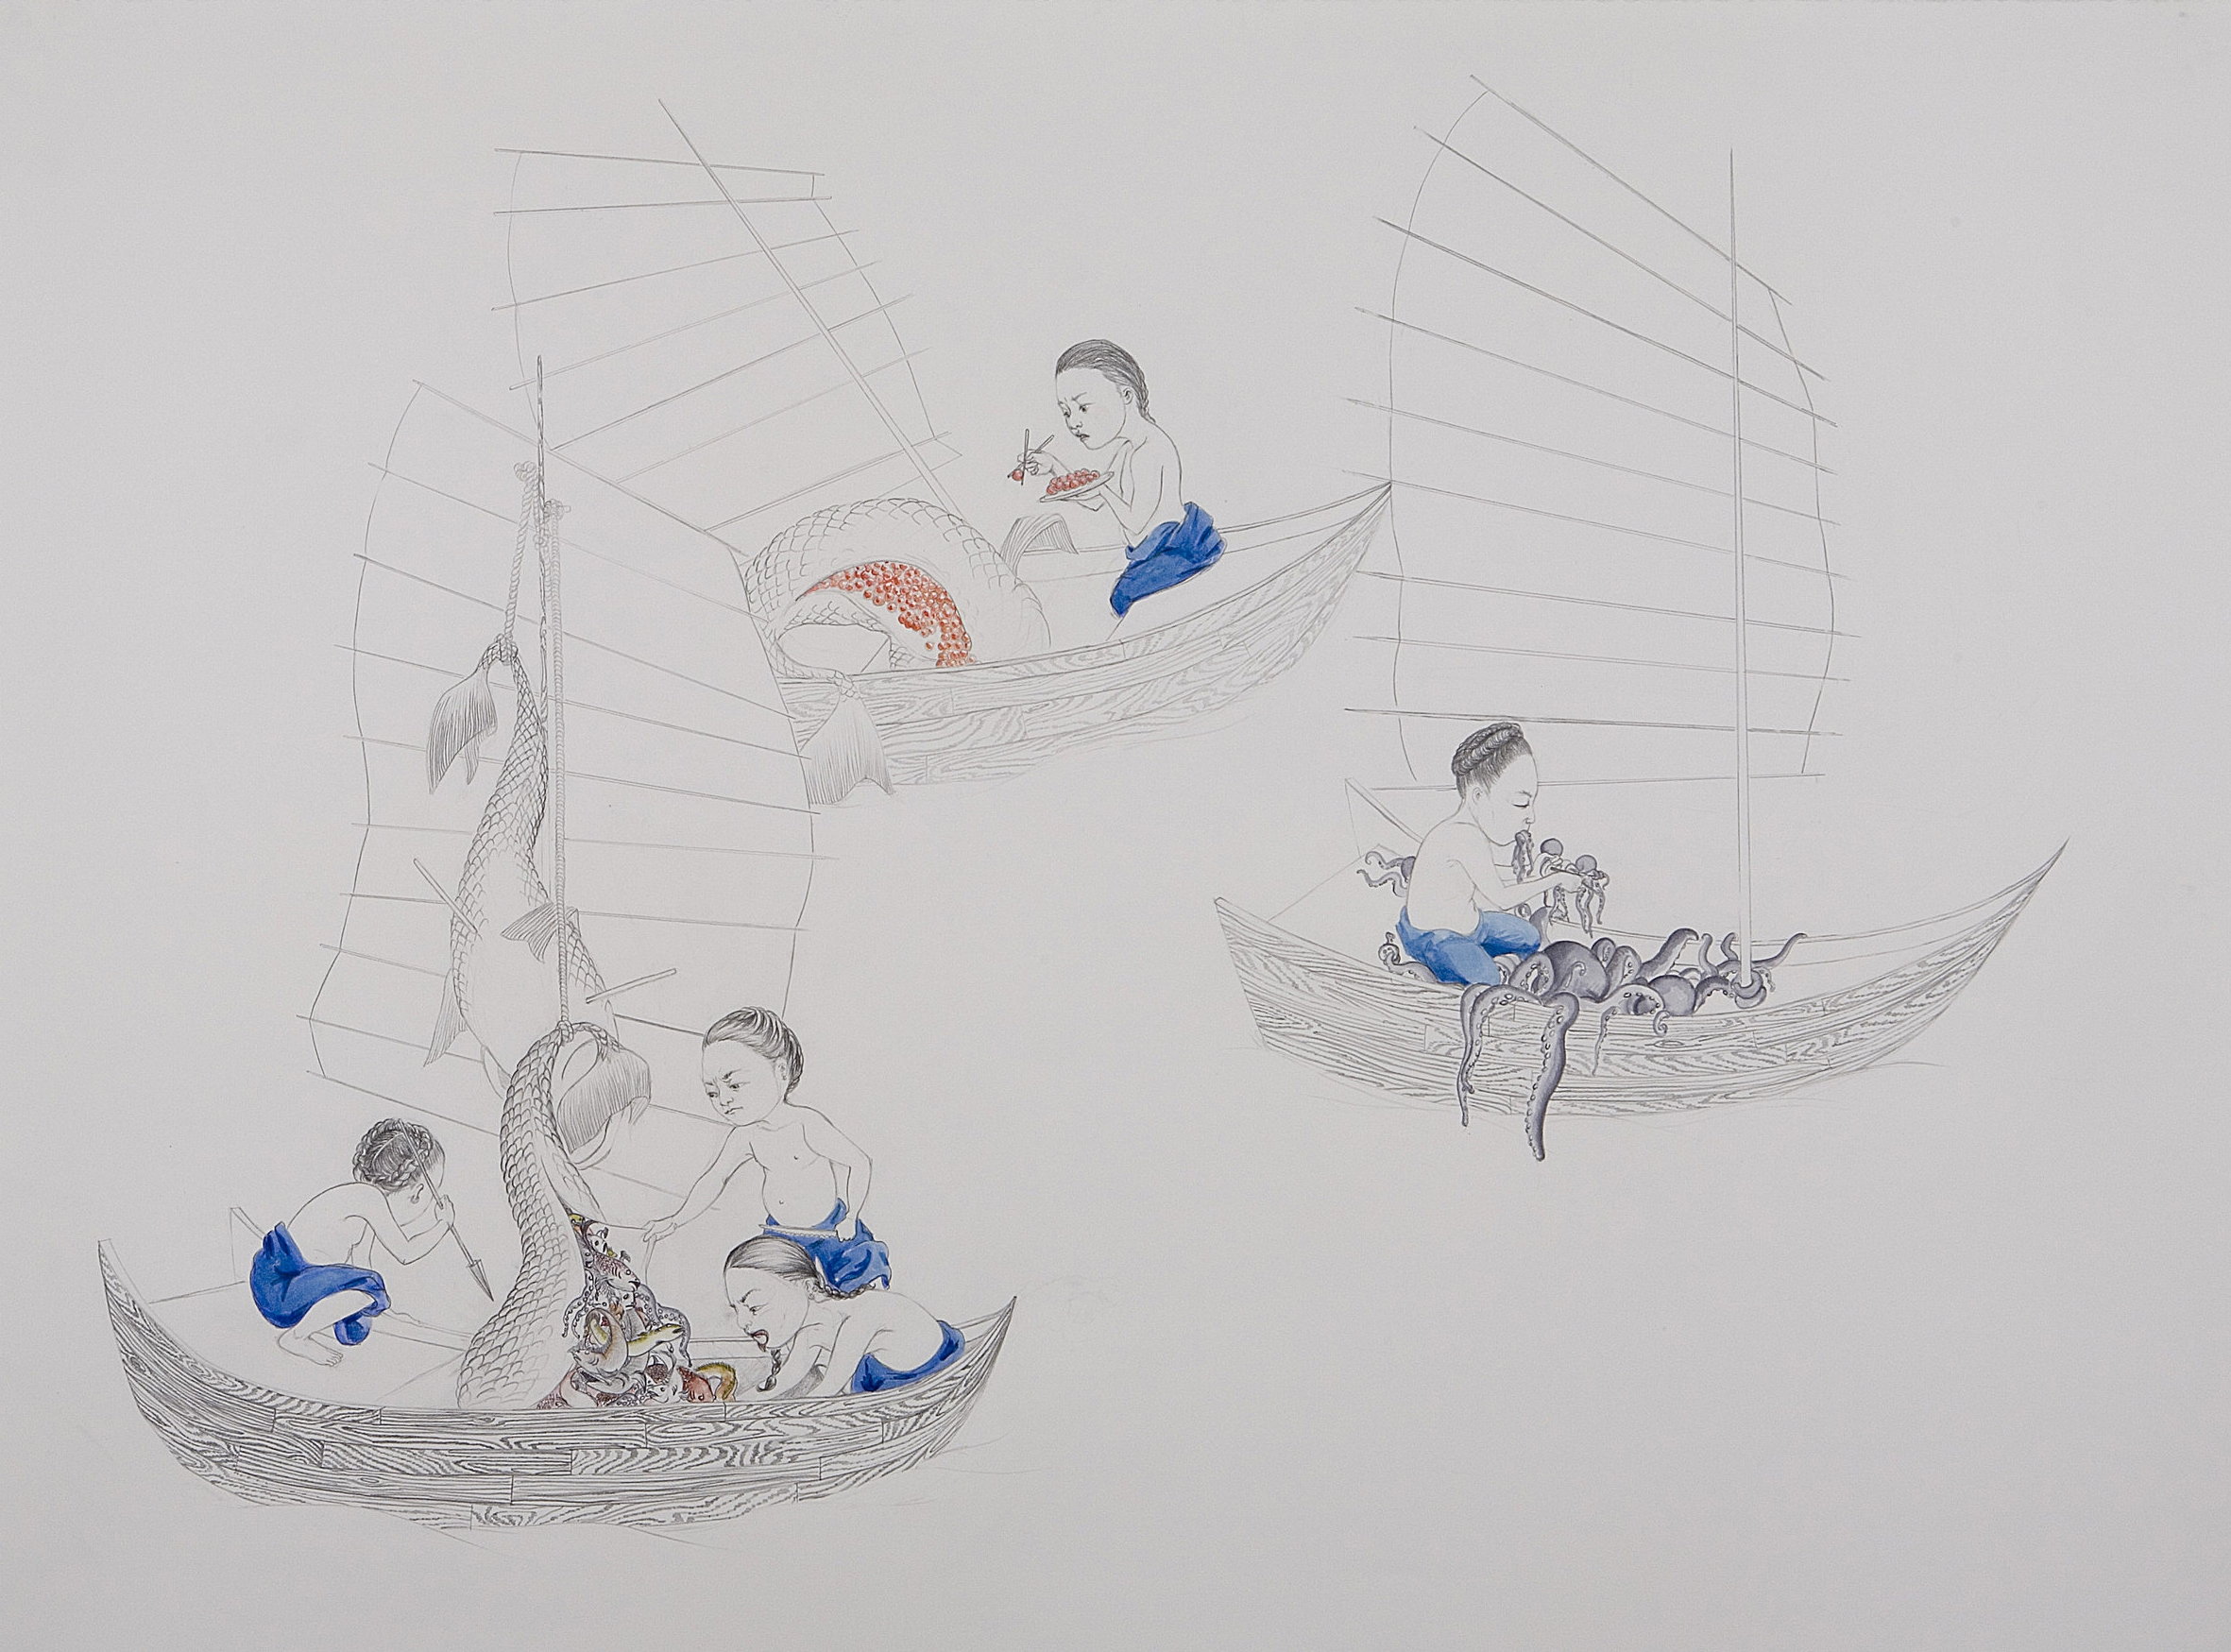 Surface Tension III: Fishing , 2007 Graphite, watercolor, ink on paper 38 X 50 inches Collection of the Wadsworth Atheneum, Hartford, CT